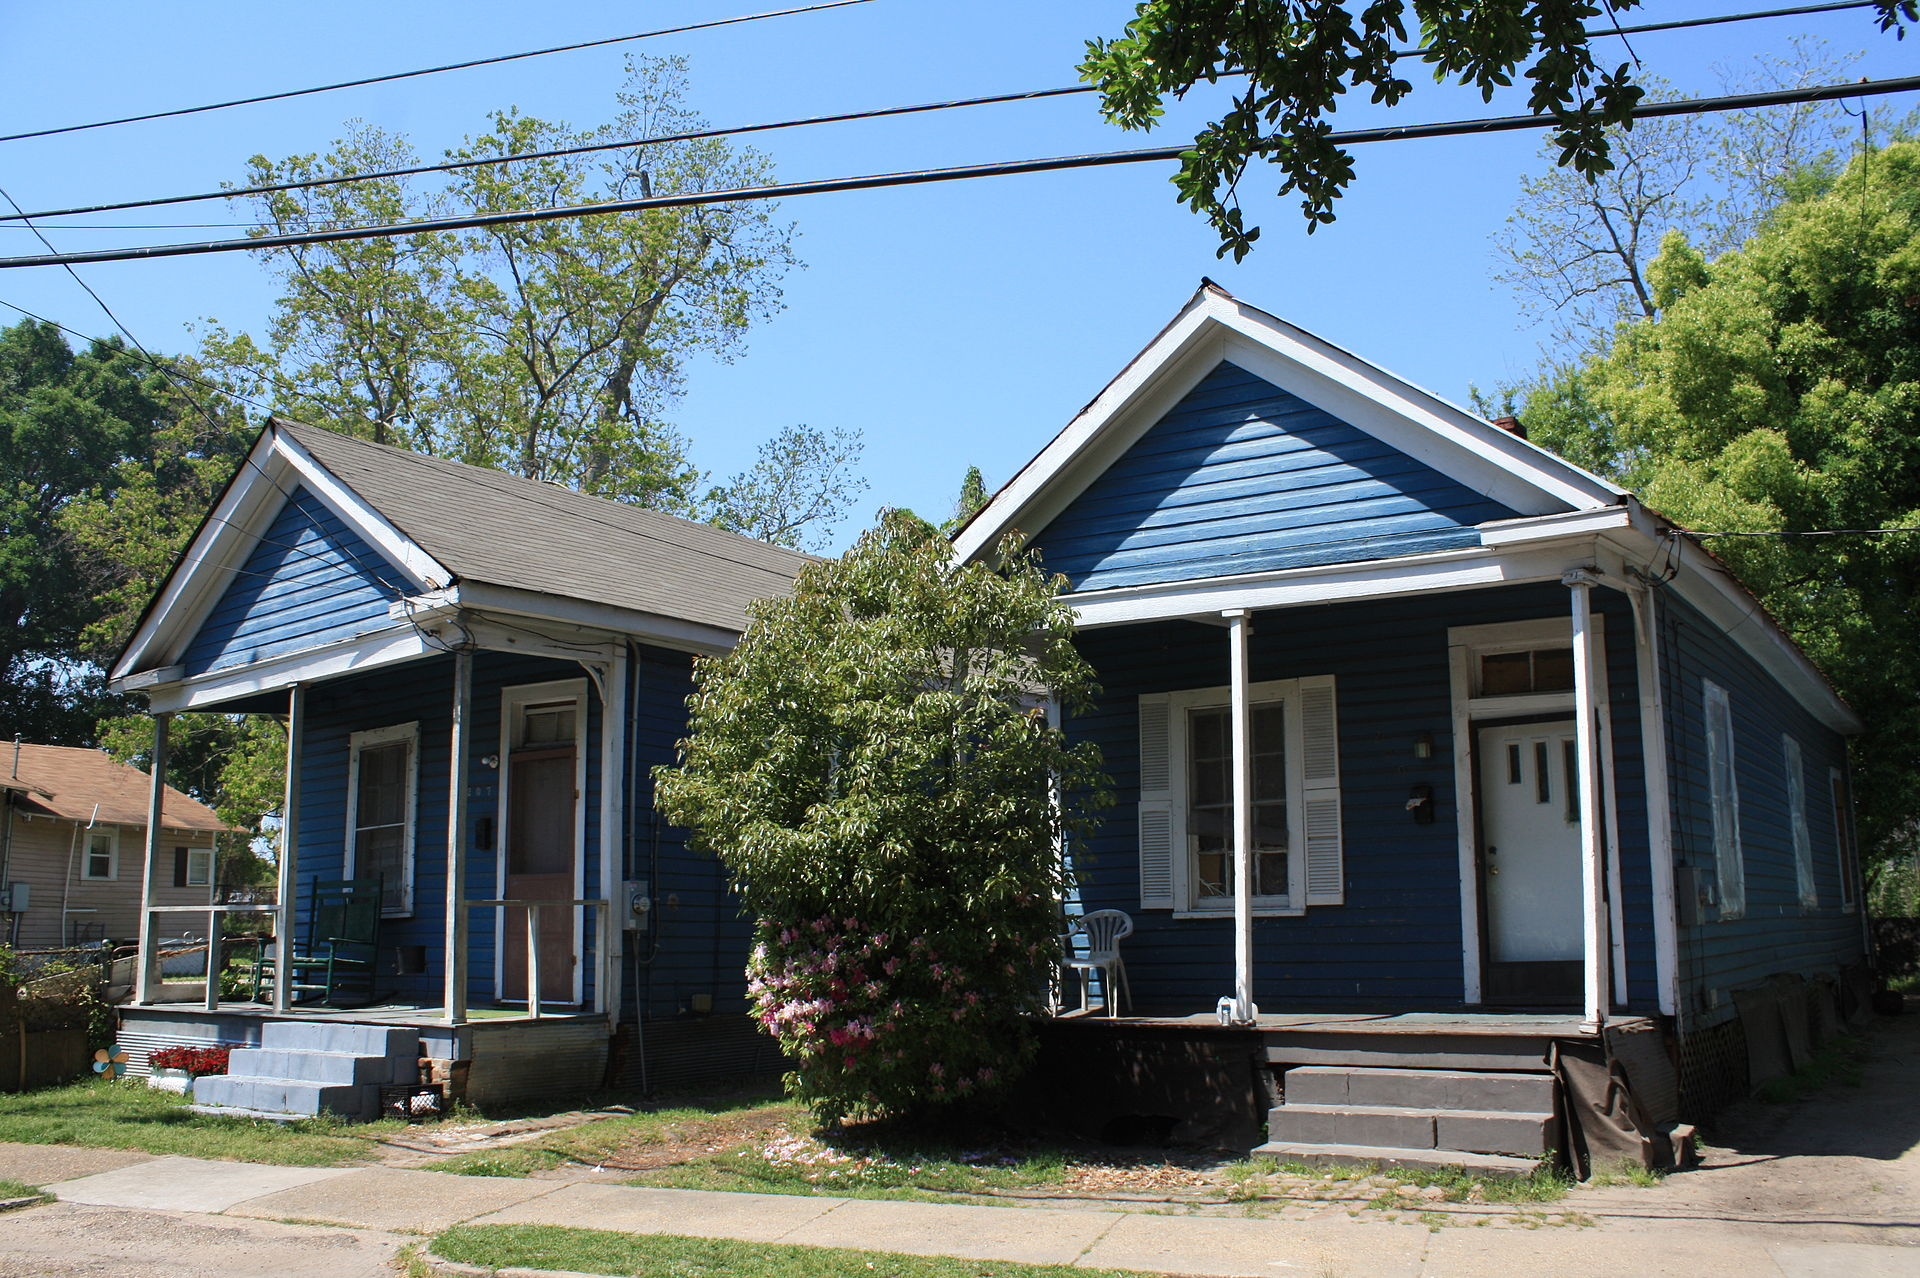 Twin shotgun houses on N. Ann Street, 1925